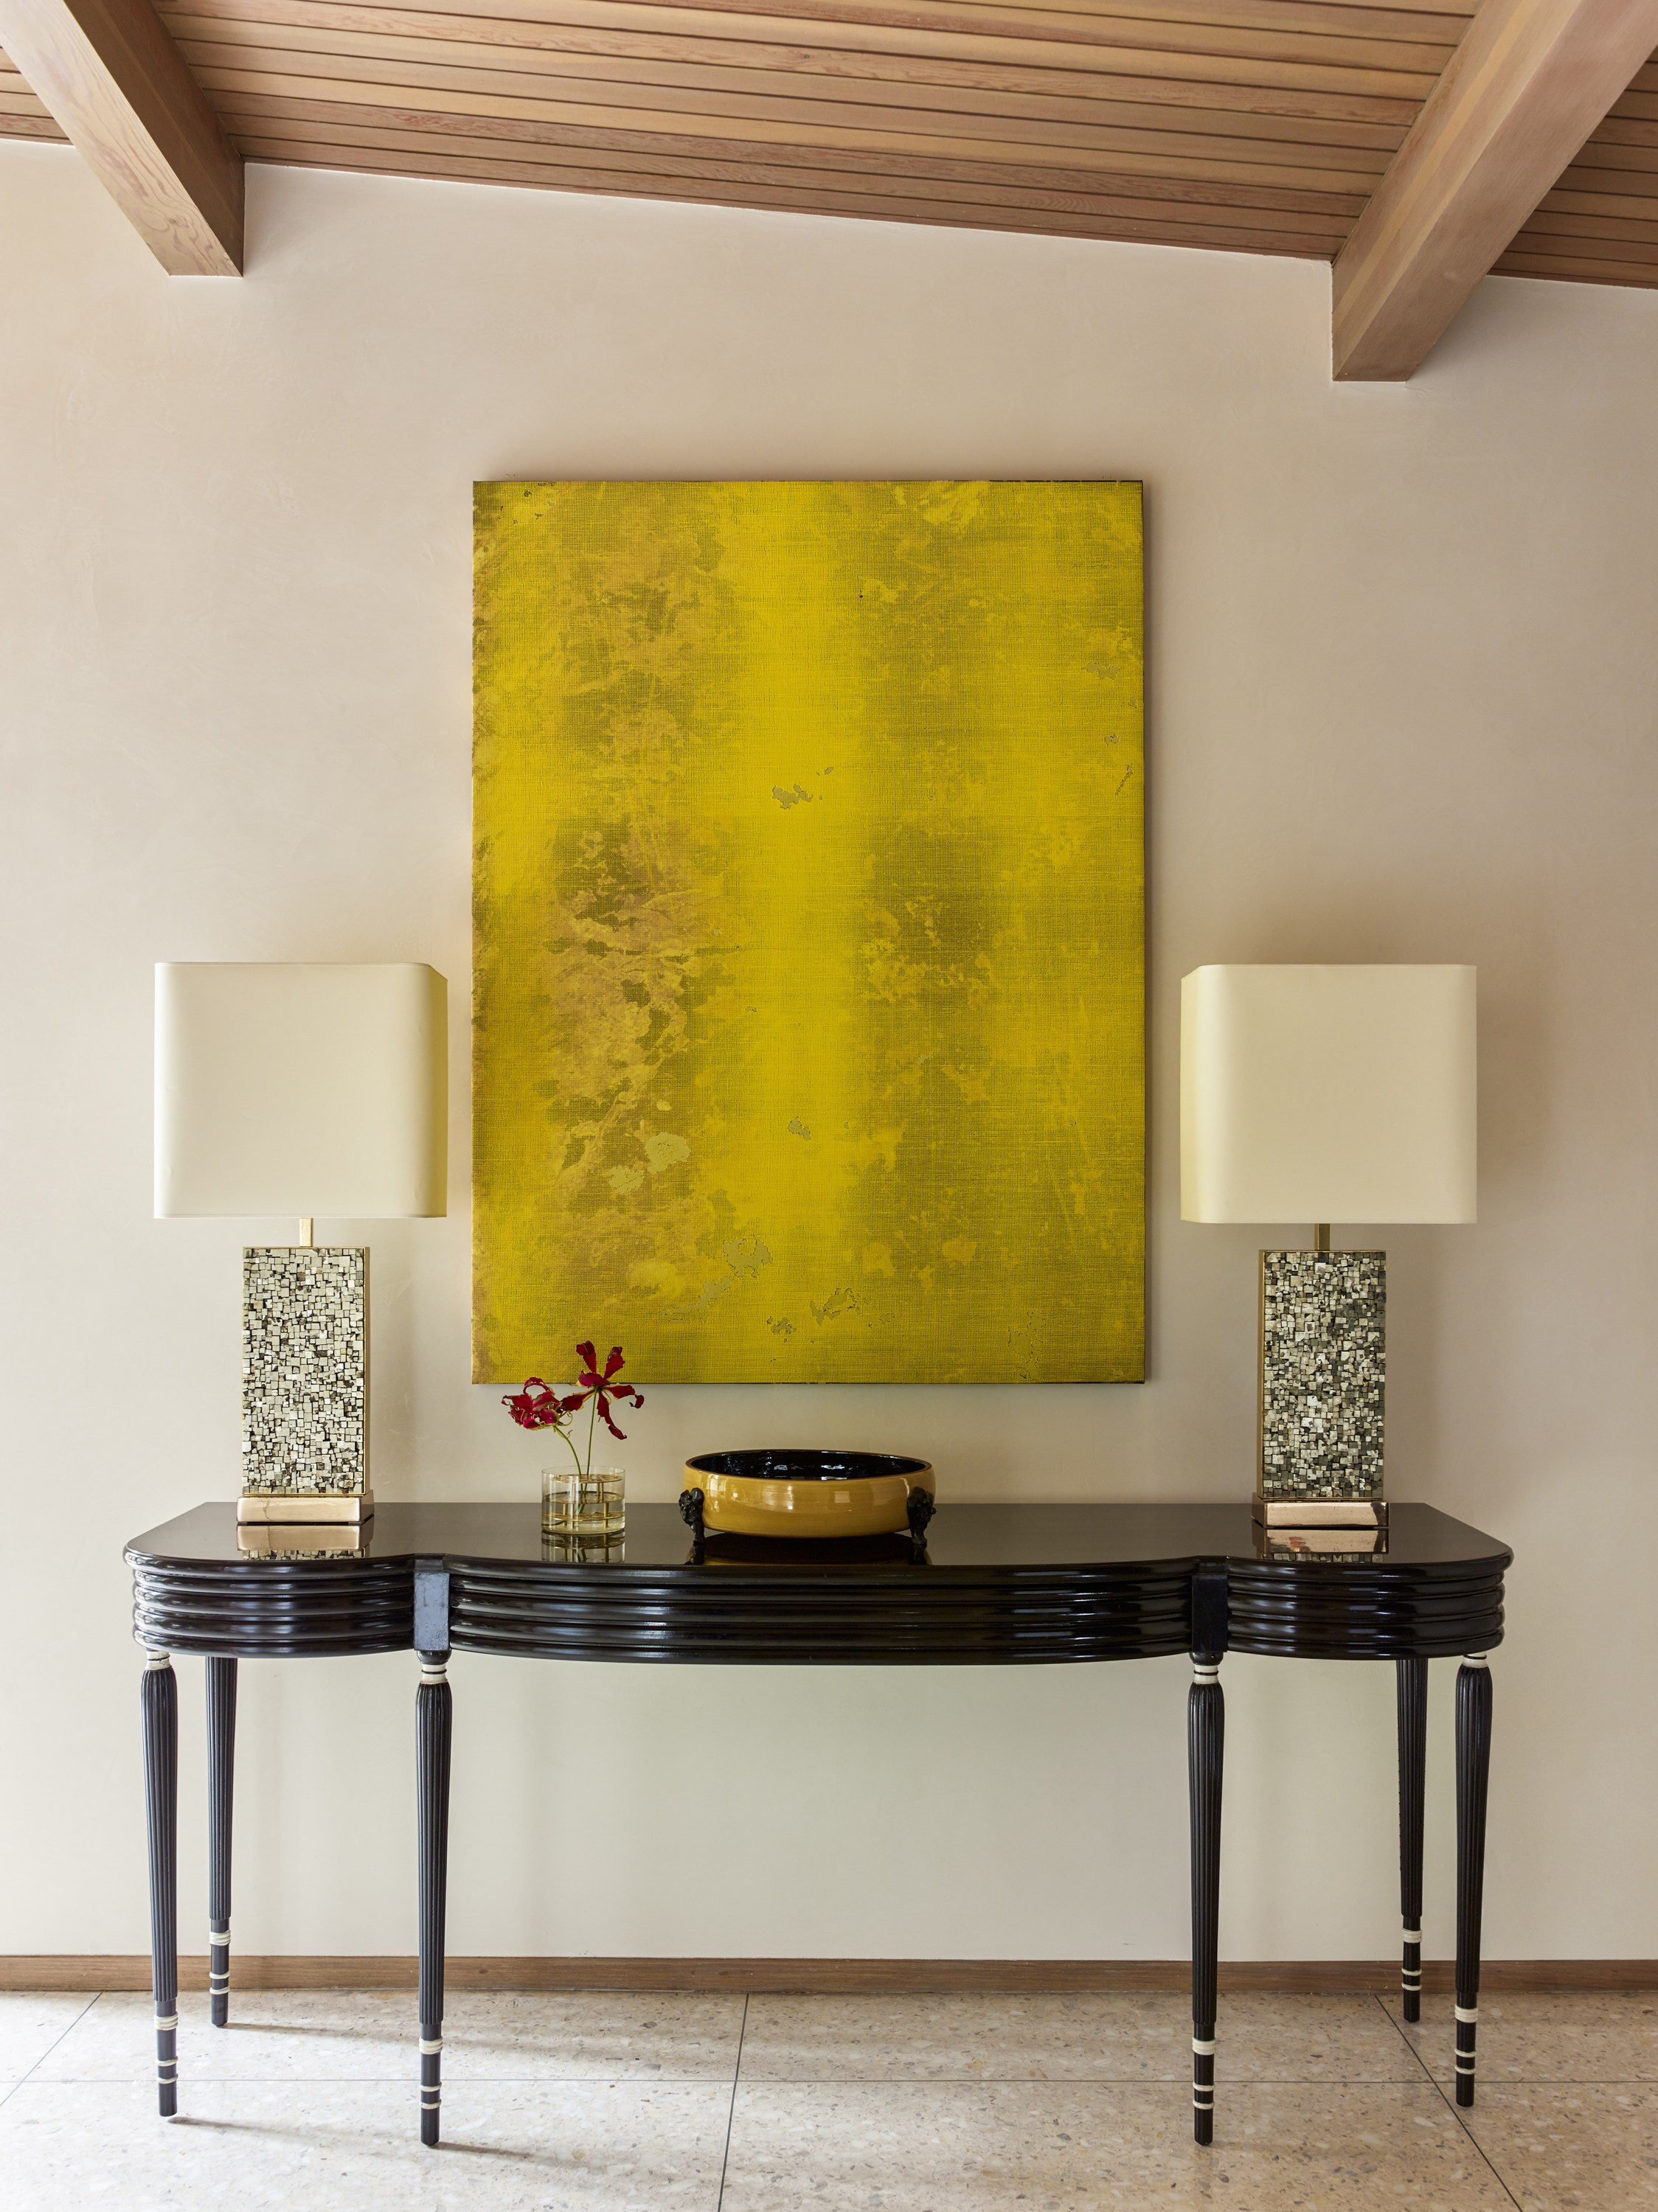 In the entryway, a console Jean Dunand is paired with brass-and-pyrite lamps by Georges Mathias and an Evan Nesbit artwork.